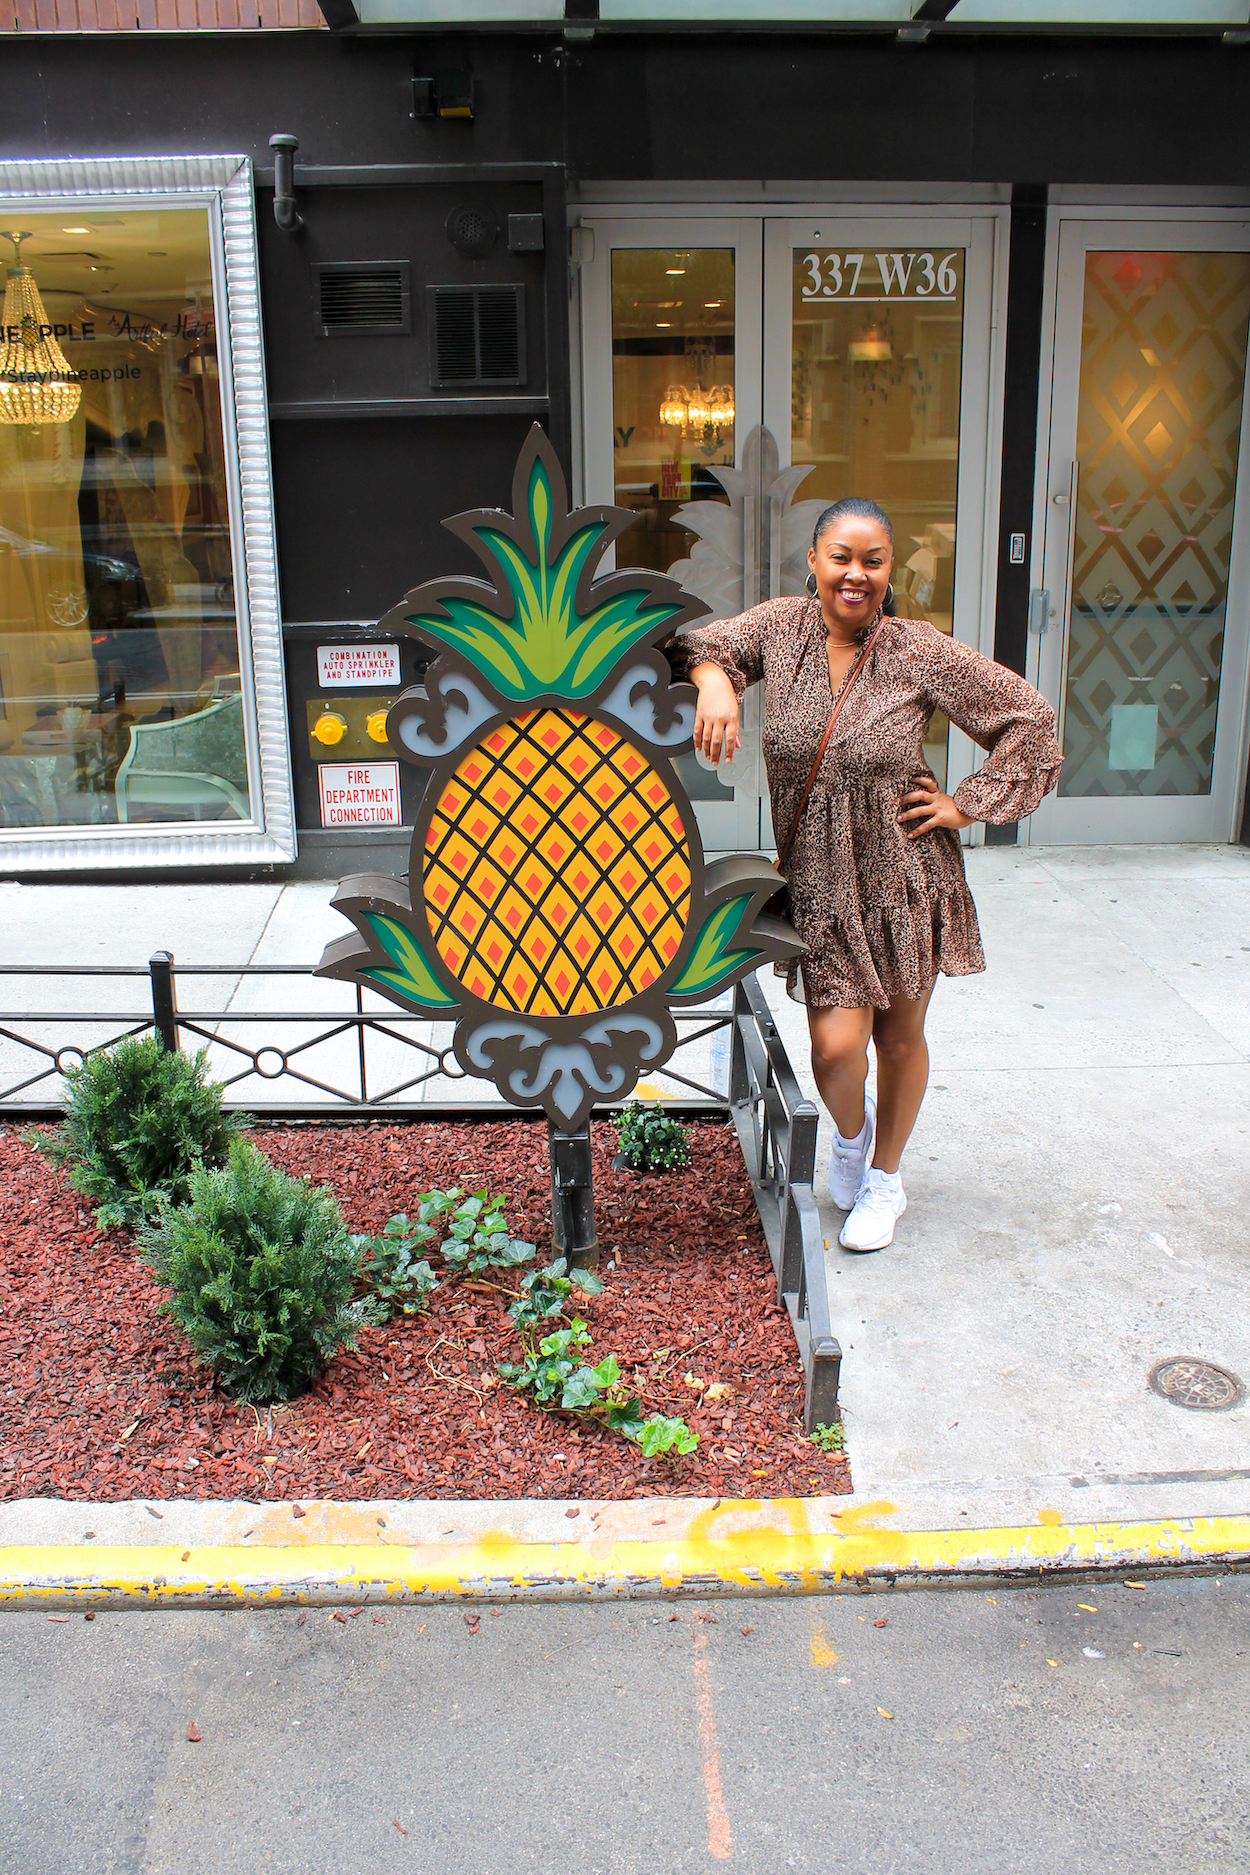 This Bahamian Gyal blogger Rogan Smith poses in front of the StayPineapple Hotel in New York City